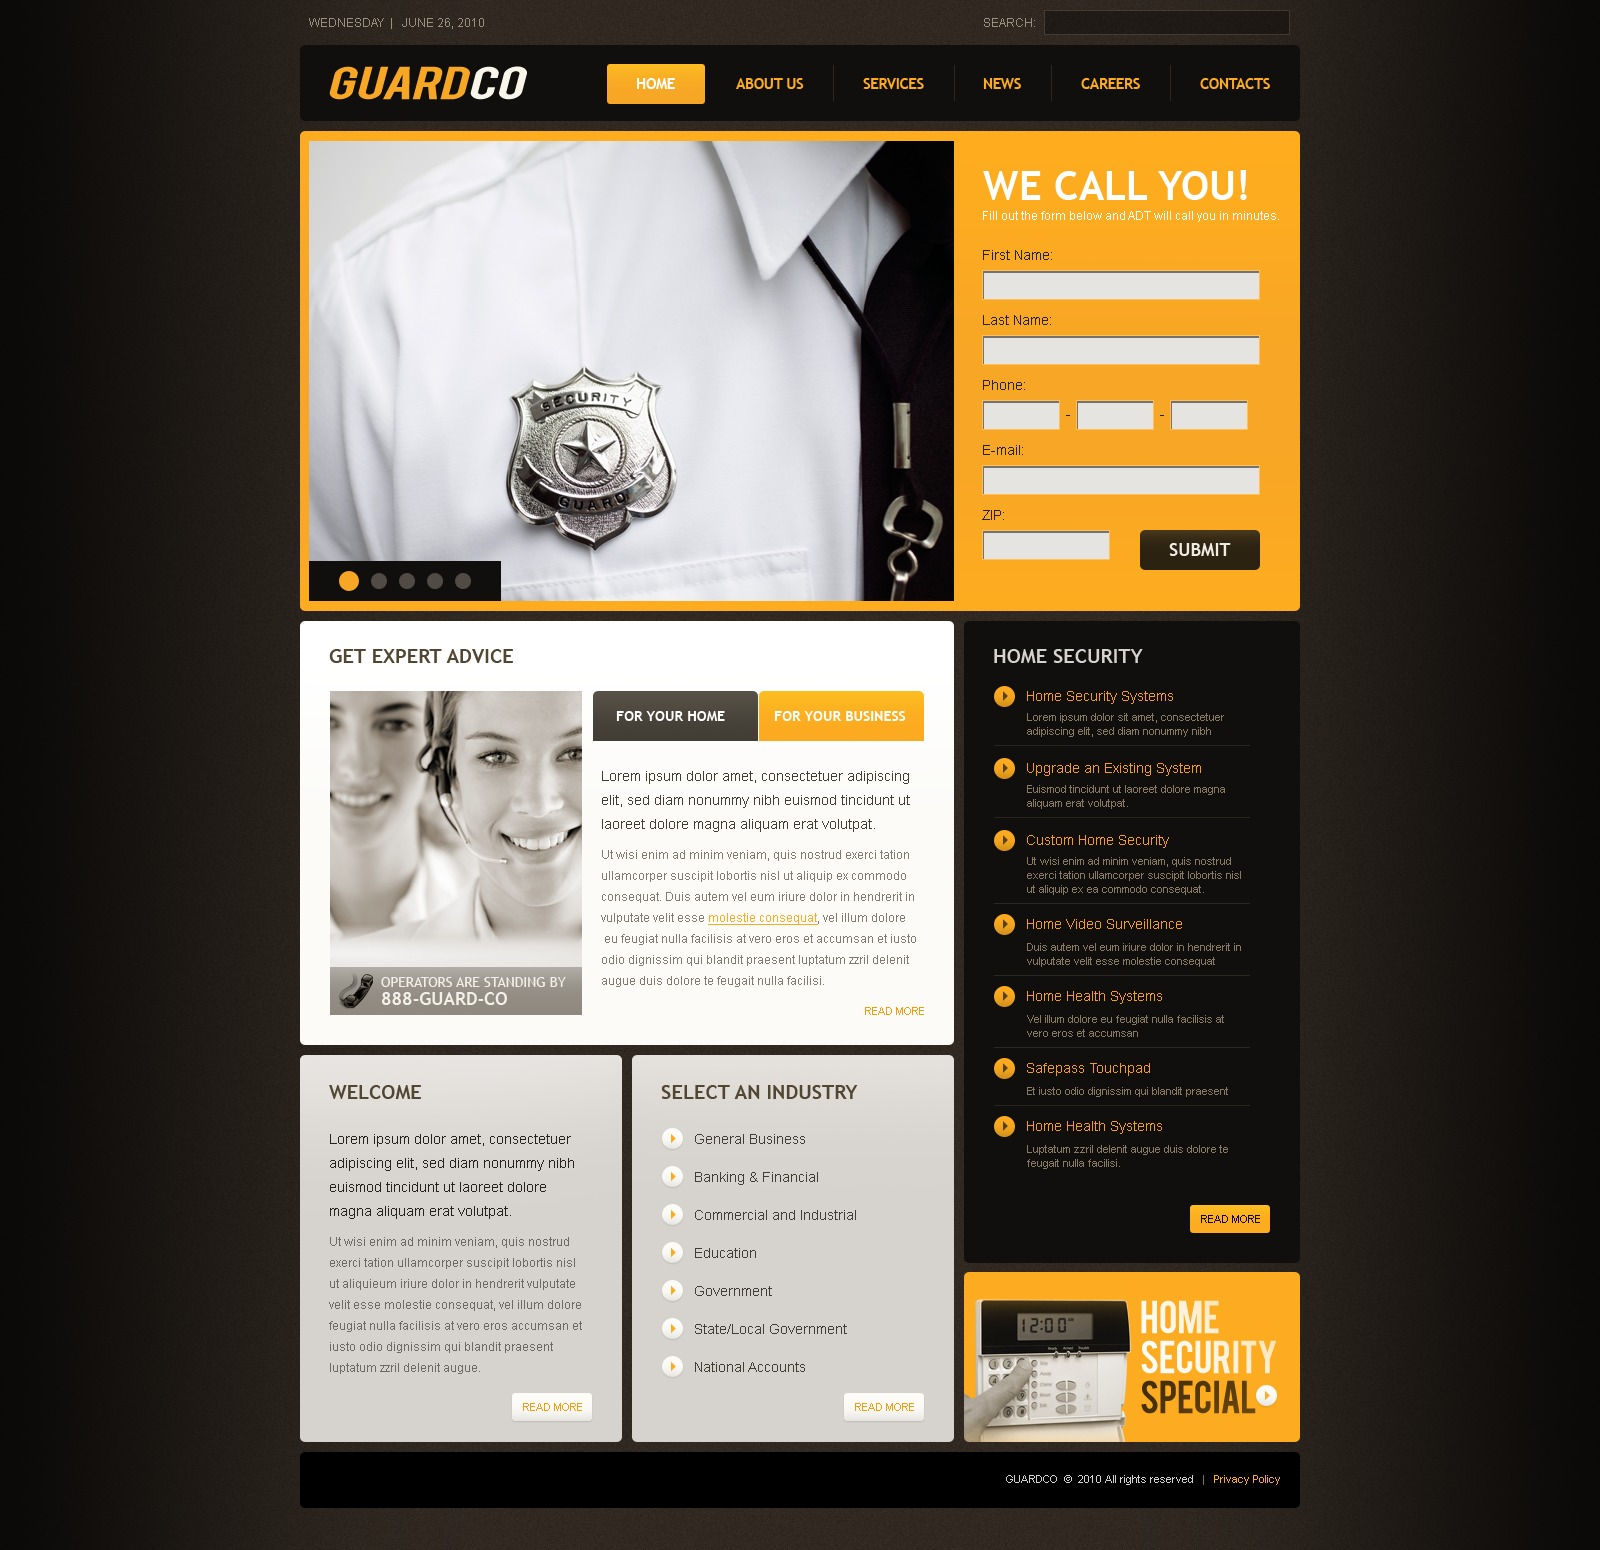 The Guard Company PSD Design 54266, one of the best PSD templates of its kind (security, flash 8, wide), also known as guard company PSD template, security PSD template, services PSD template, secure PSD template, safe PSD template, safety PSD template, safeguard PSD template, protection system PSD template, information PSD template, data PSD template, service solution PSD template, business PSD template, home and related with guard company, security, services, secure, safe, safety, safeguard, protection system, information, data, service solution, business, home, etc.